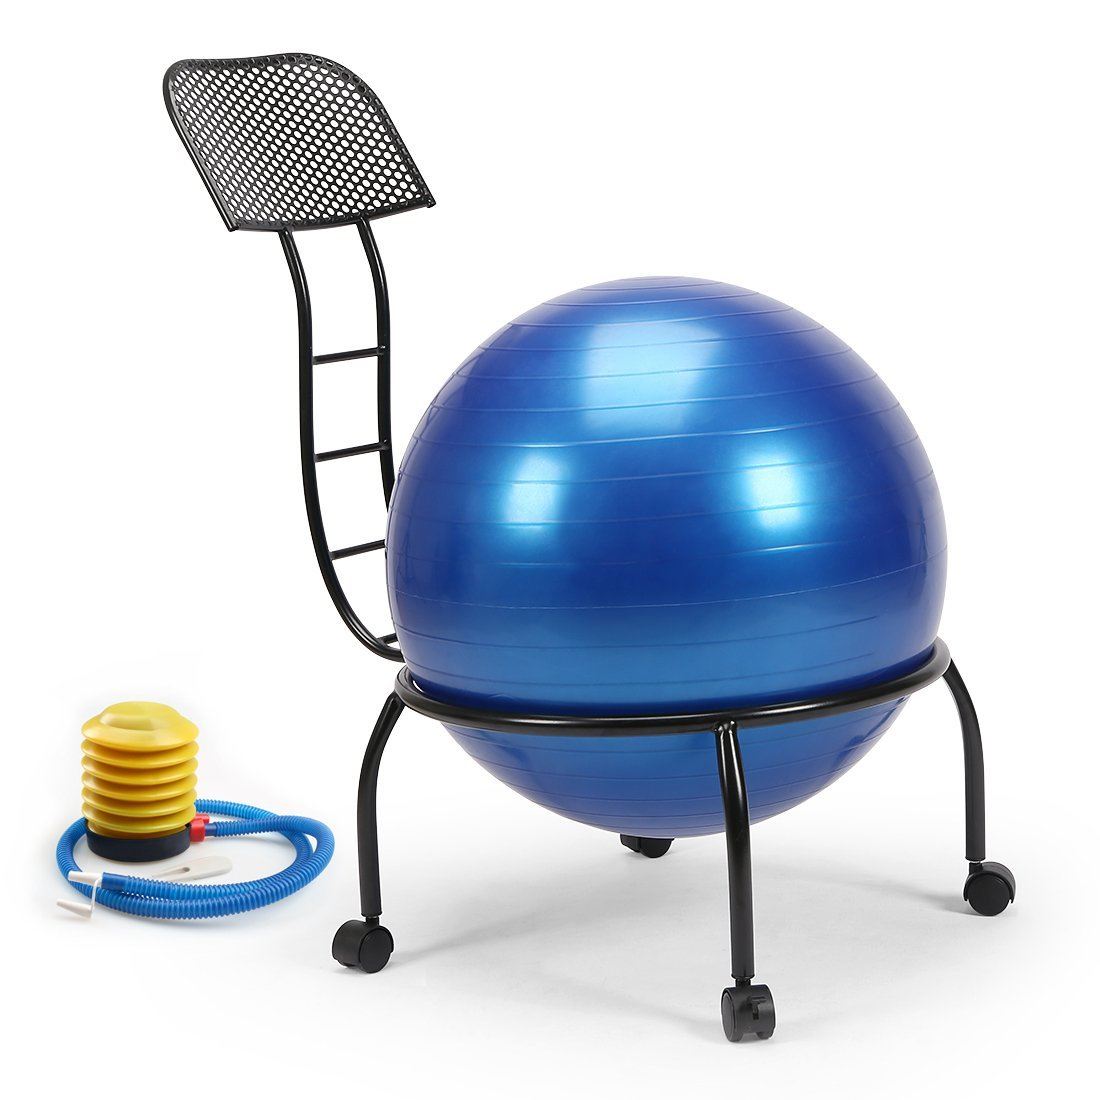 Yoga Ball Desk Chair Live Up Balance Ball Posture Chair Exercise Fitness 20 3 Inch Yoga Ball Chair Metal Frame With Wheels For Home And Office